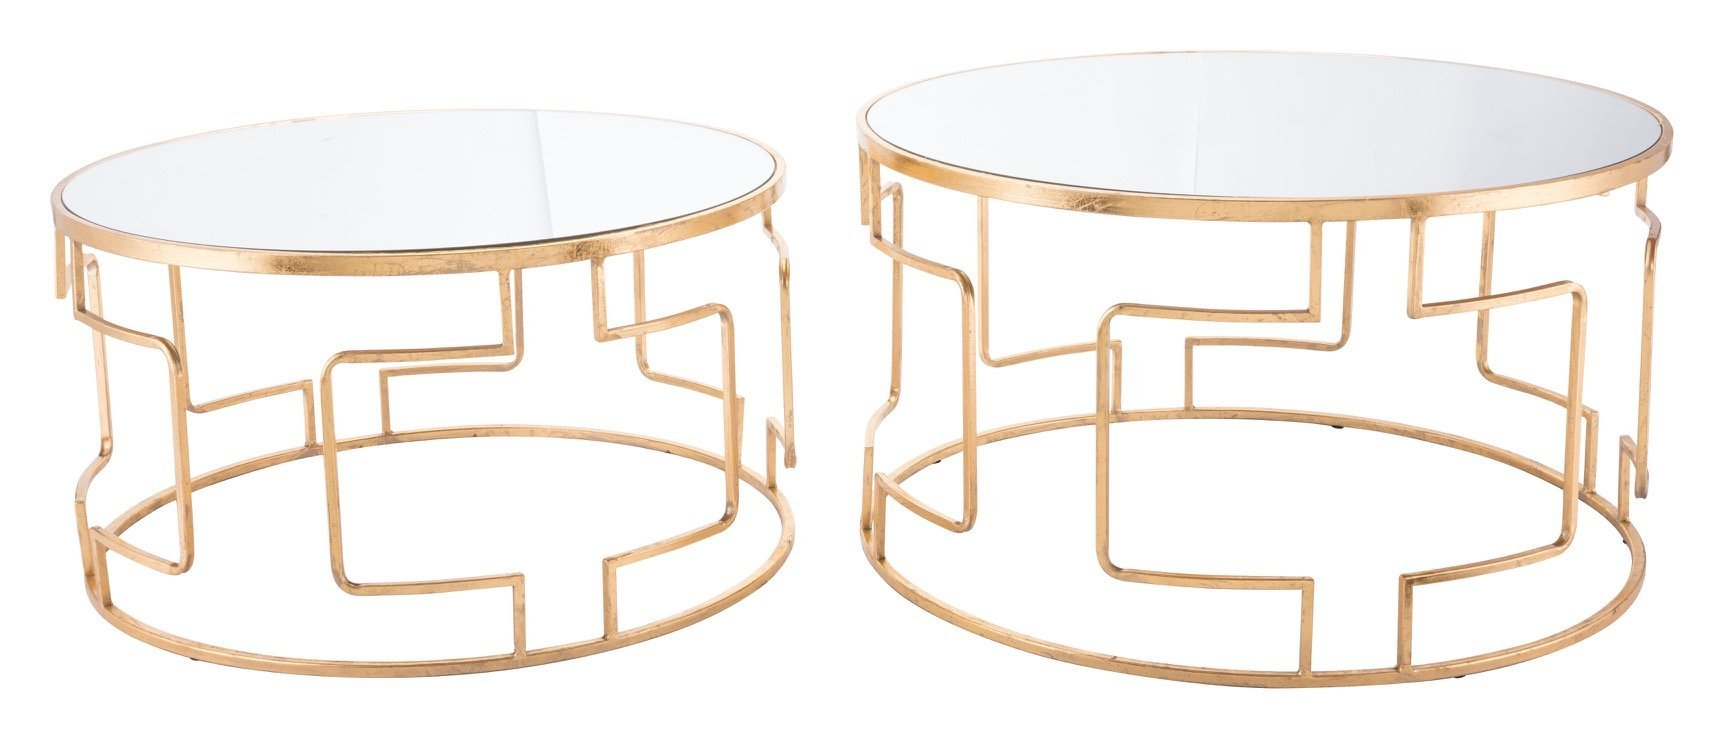 king round accent tables gold with mirrored glass top set side alan decor table small antique and chairs espresso nesting mid century lounge chair ashley furniture coffee unusual